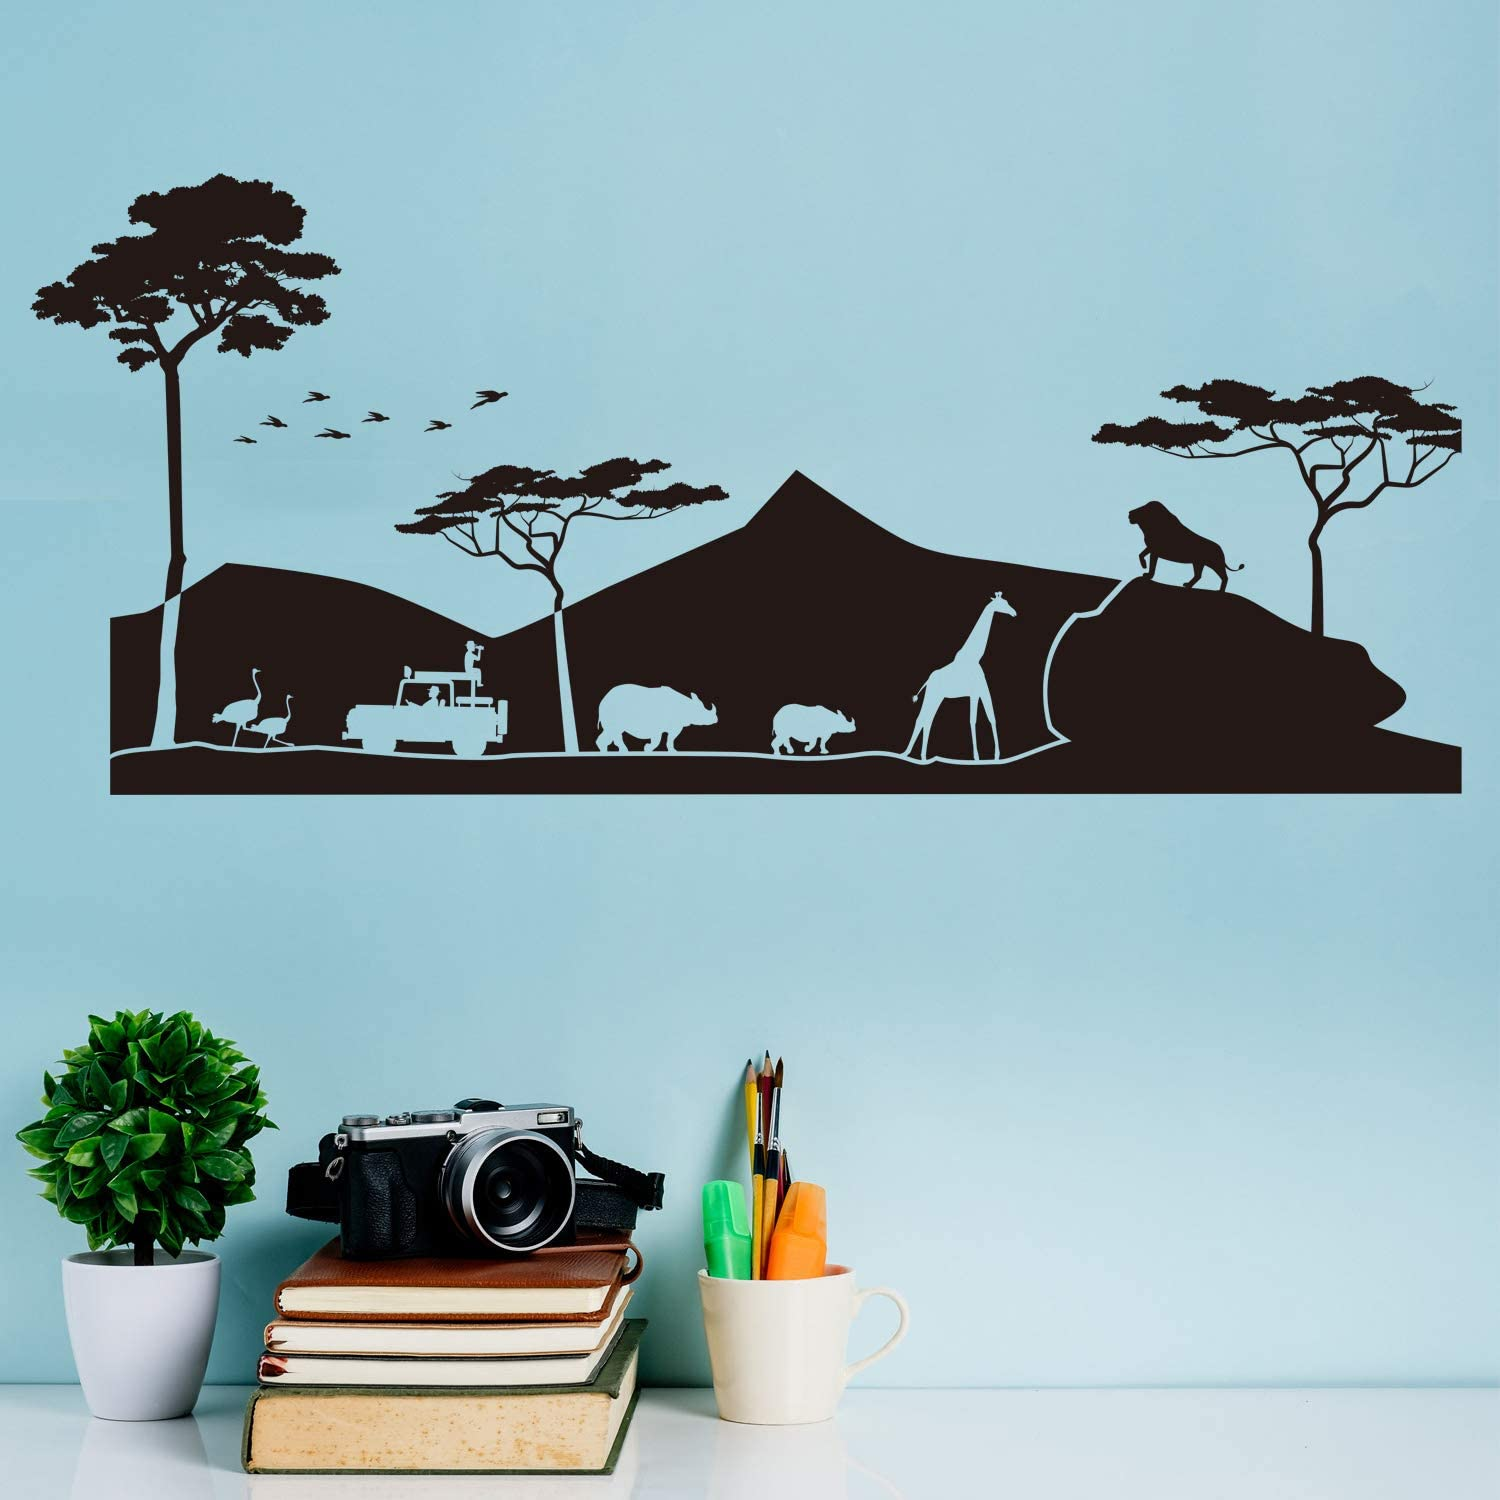 VODOE African Wall Decal, Animal Wall Decal, Nature Forest Jungle Tropical Desert Natural Safari Sunset Natural Stickers Suitable for Family Living Vinyl Art Decor(Black 36.2 X 15.7 inches)